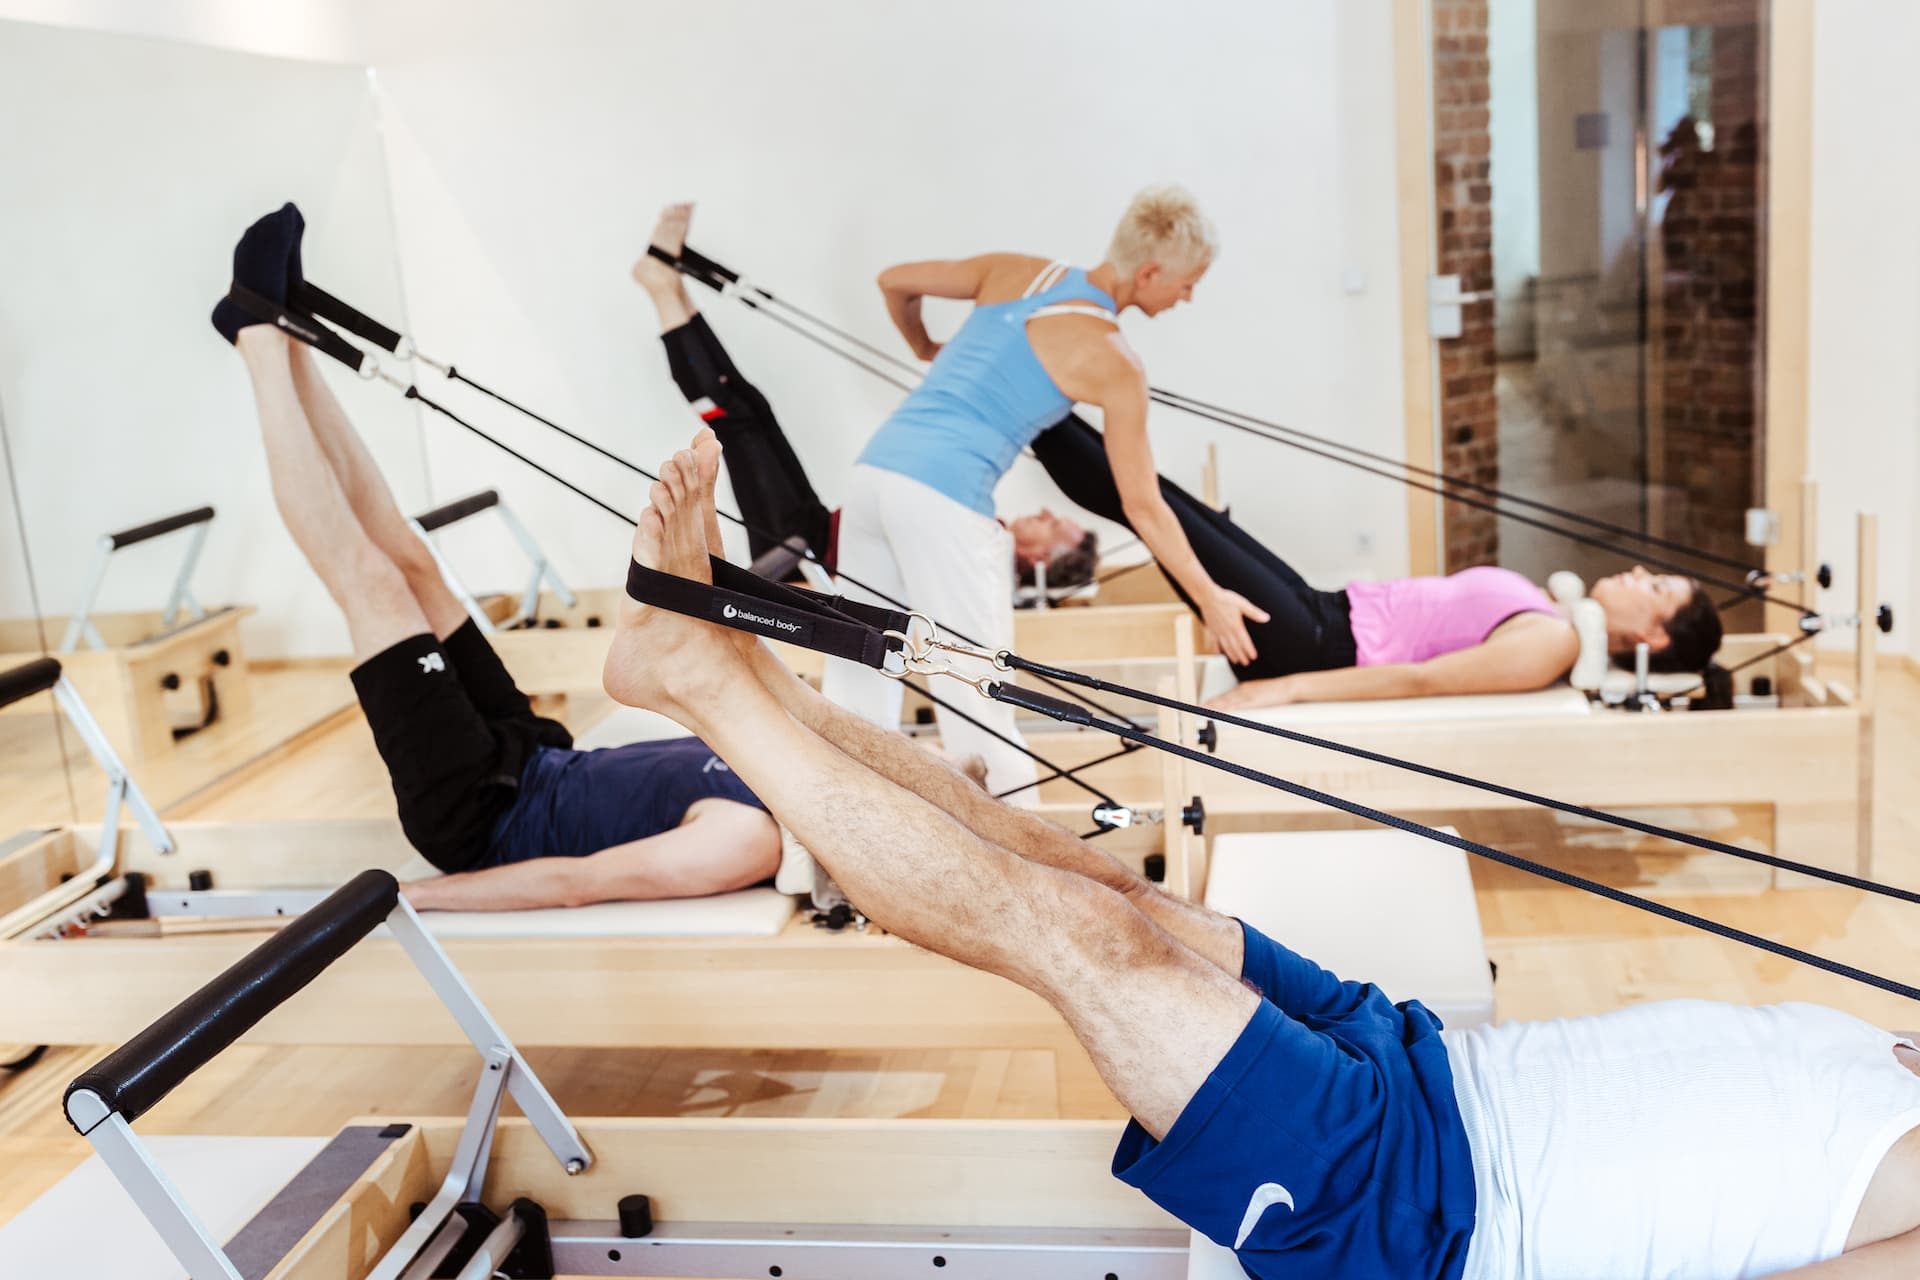 Pilates Reformer Training Berlin